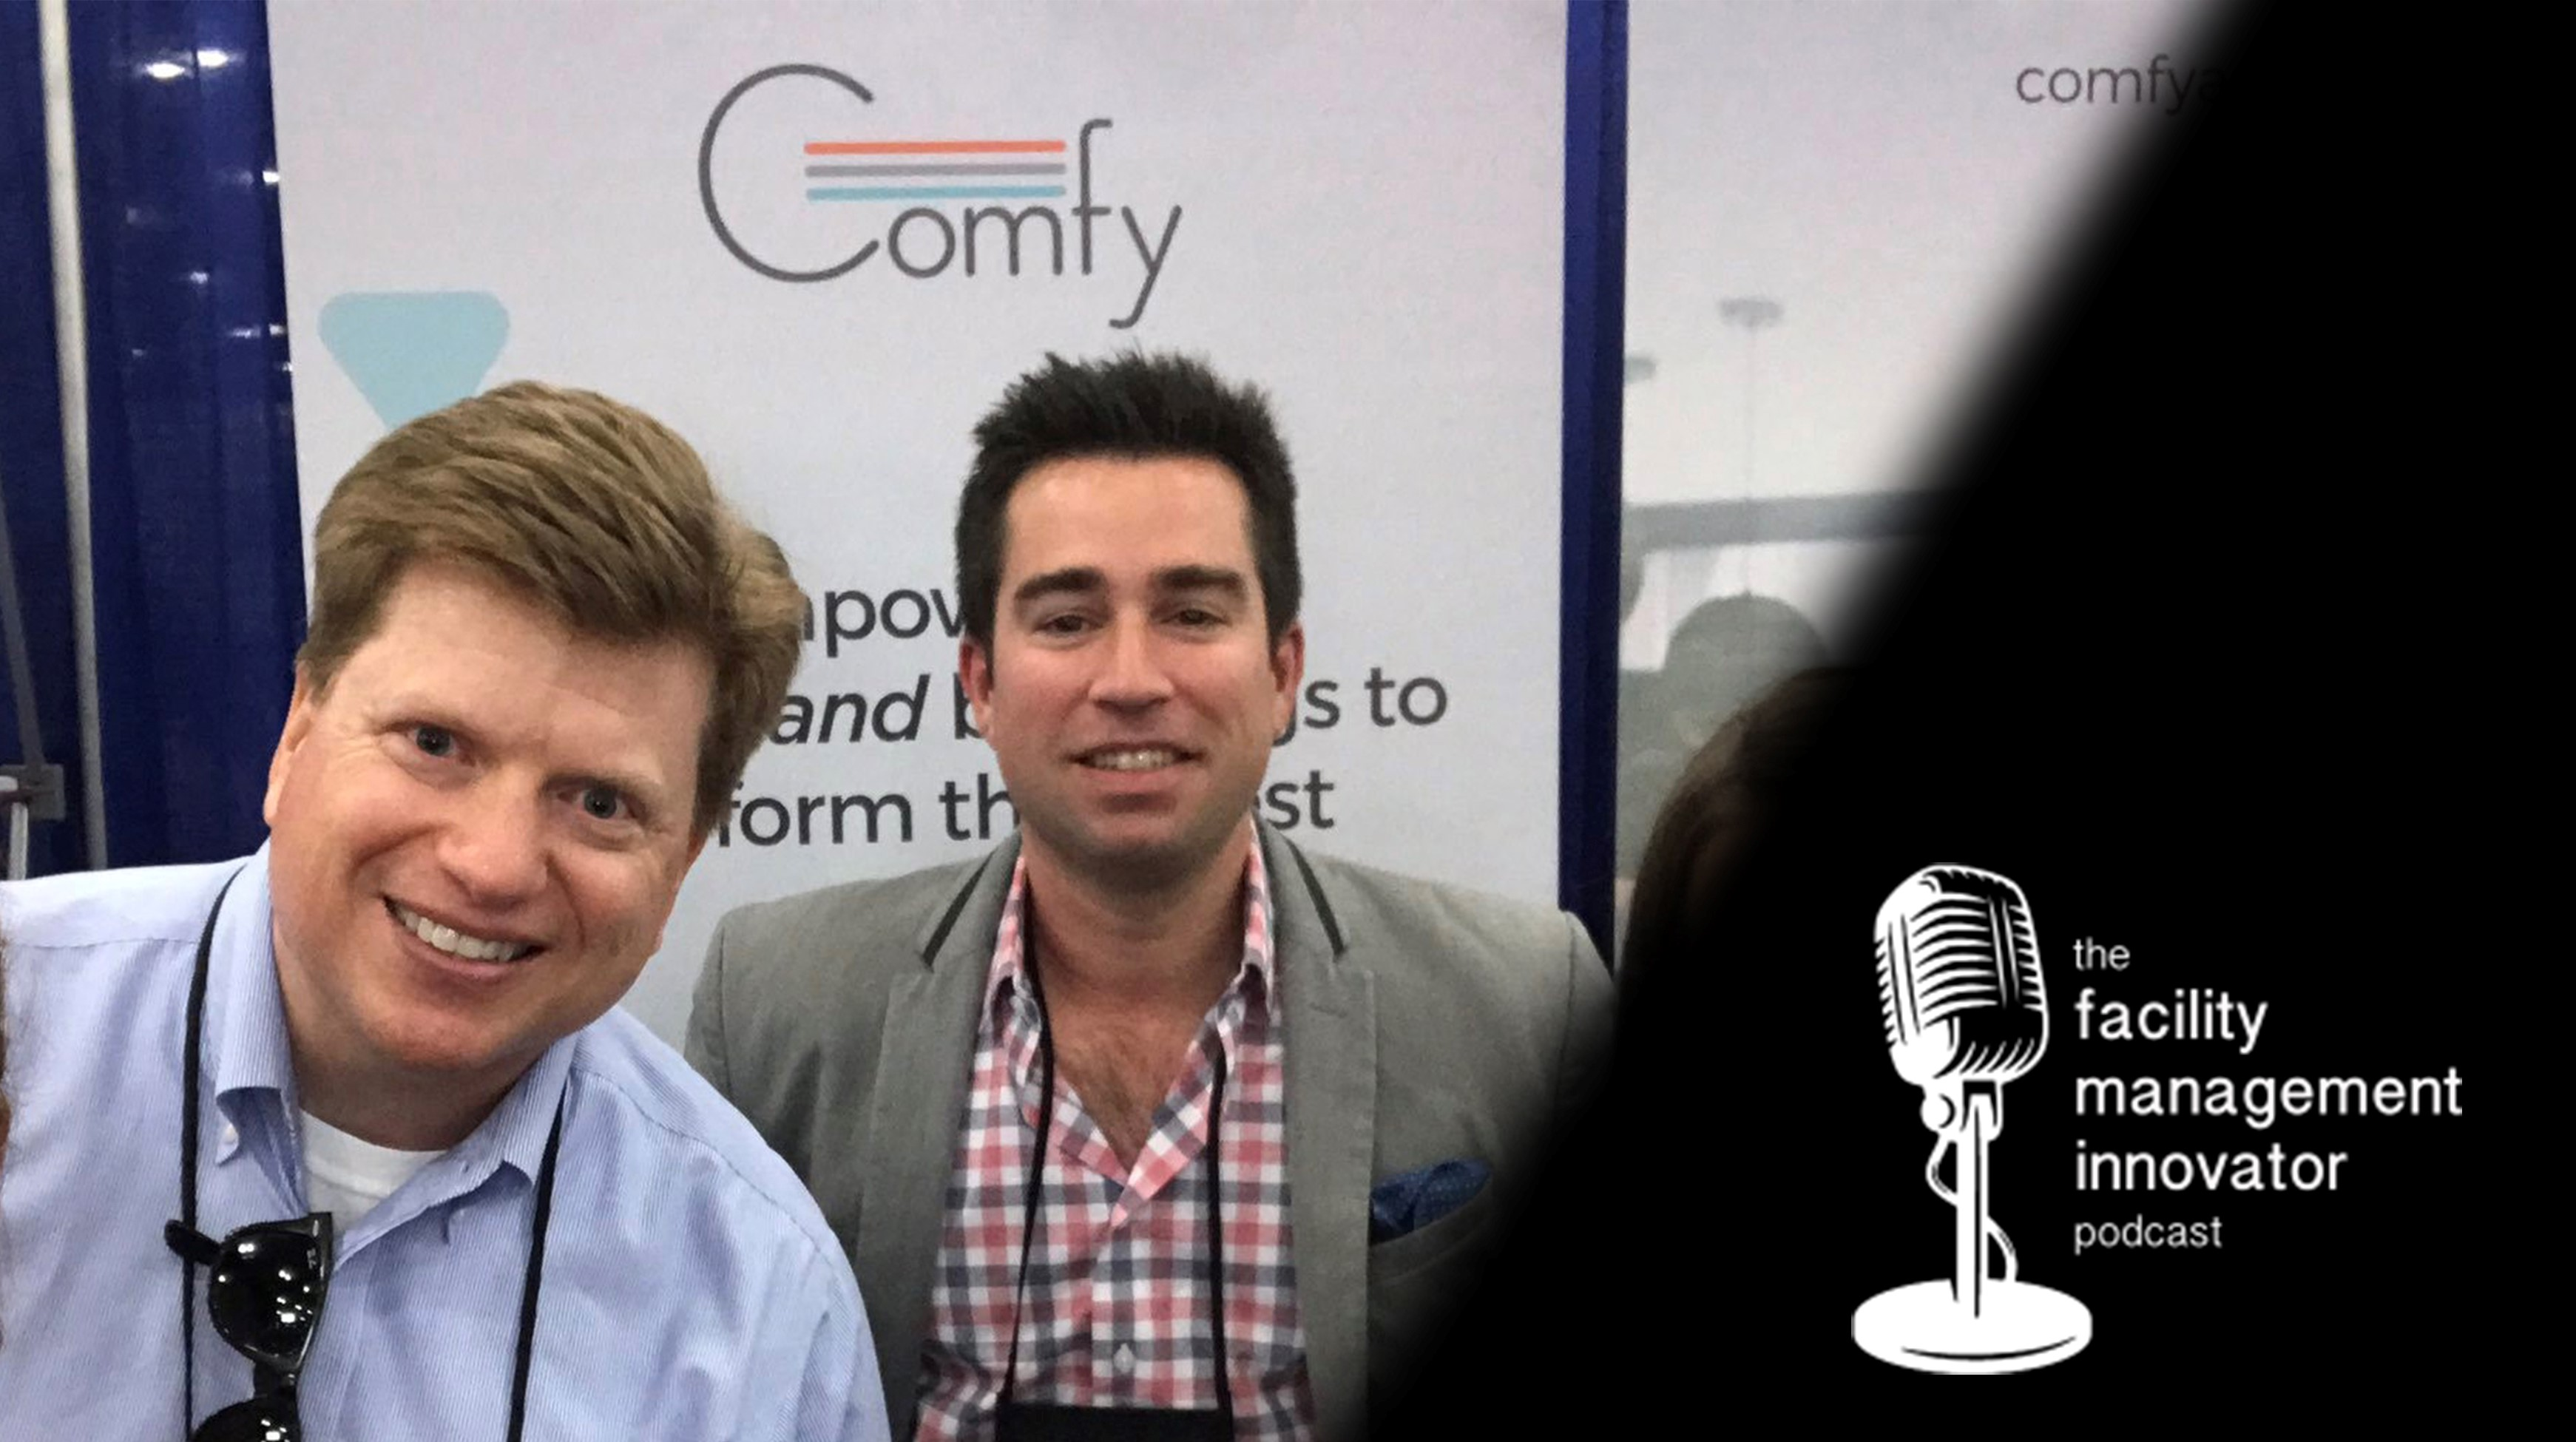 Ep. 68: Workplace Experience Tools & Adopting FM Technology | Drew DePriest - Comfy